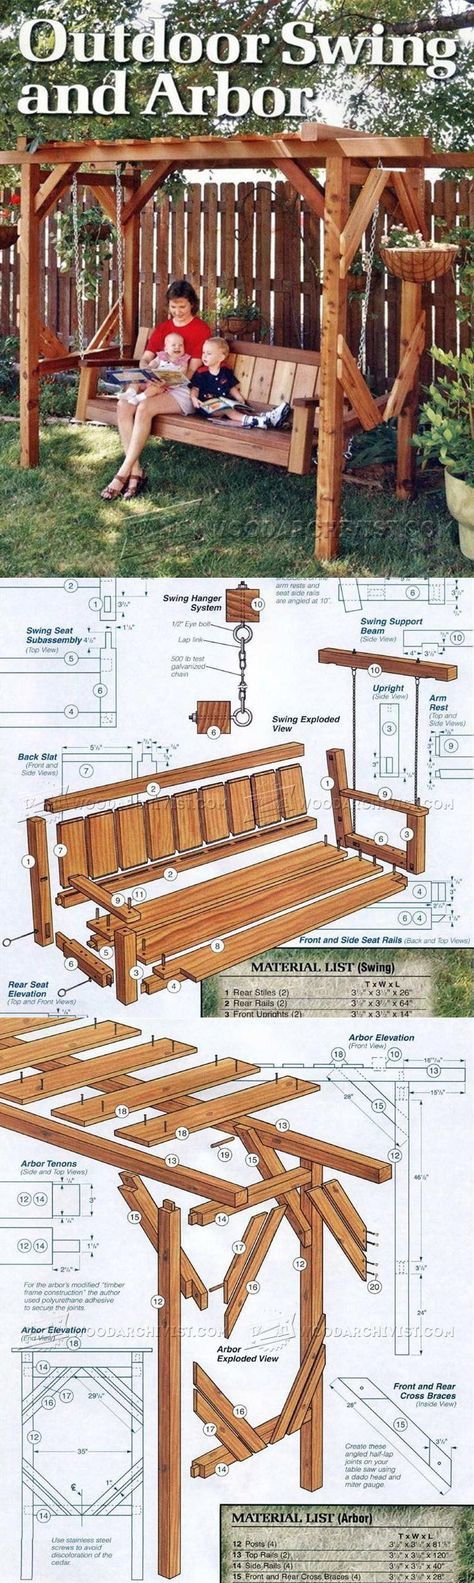 Outdoor Arbor Swing Plans   Outdoor Furniture Plans And Projects |  WoodArchivist.com